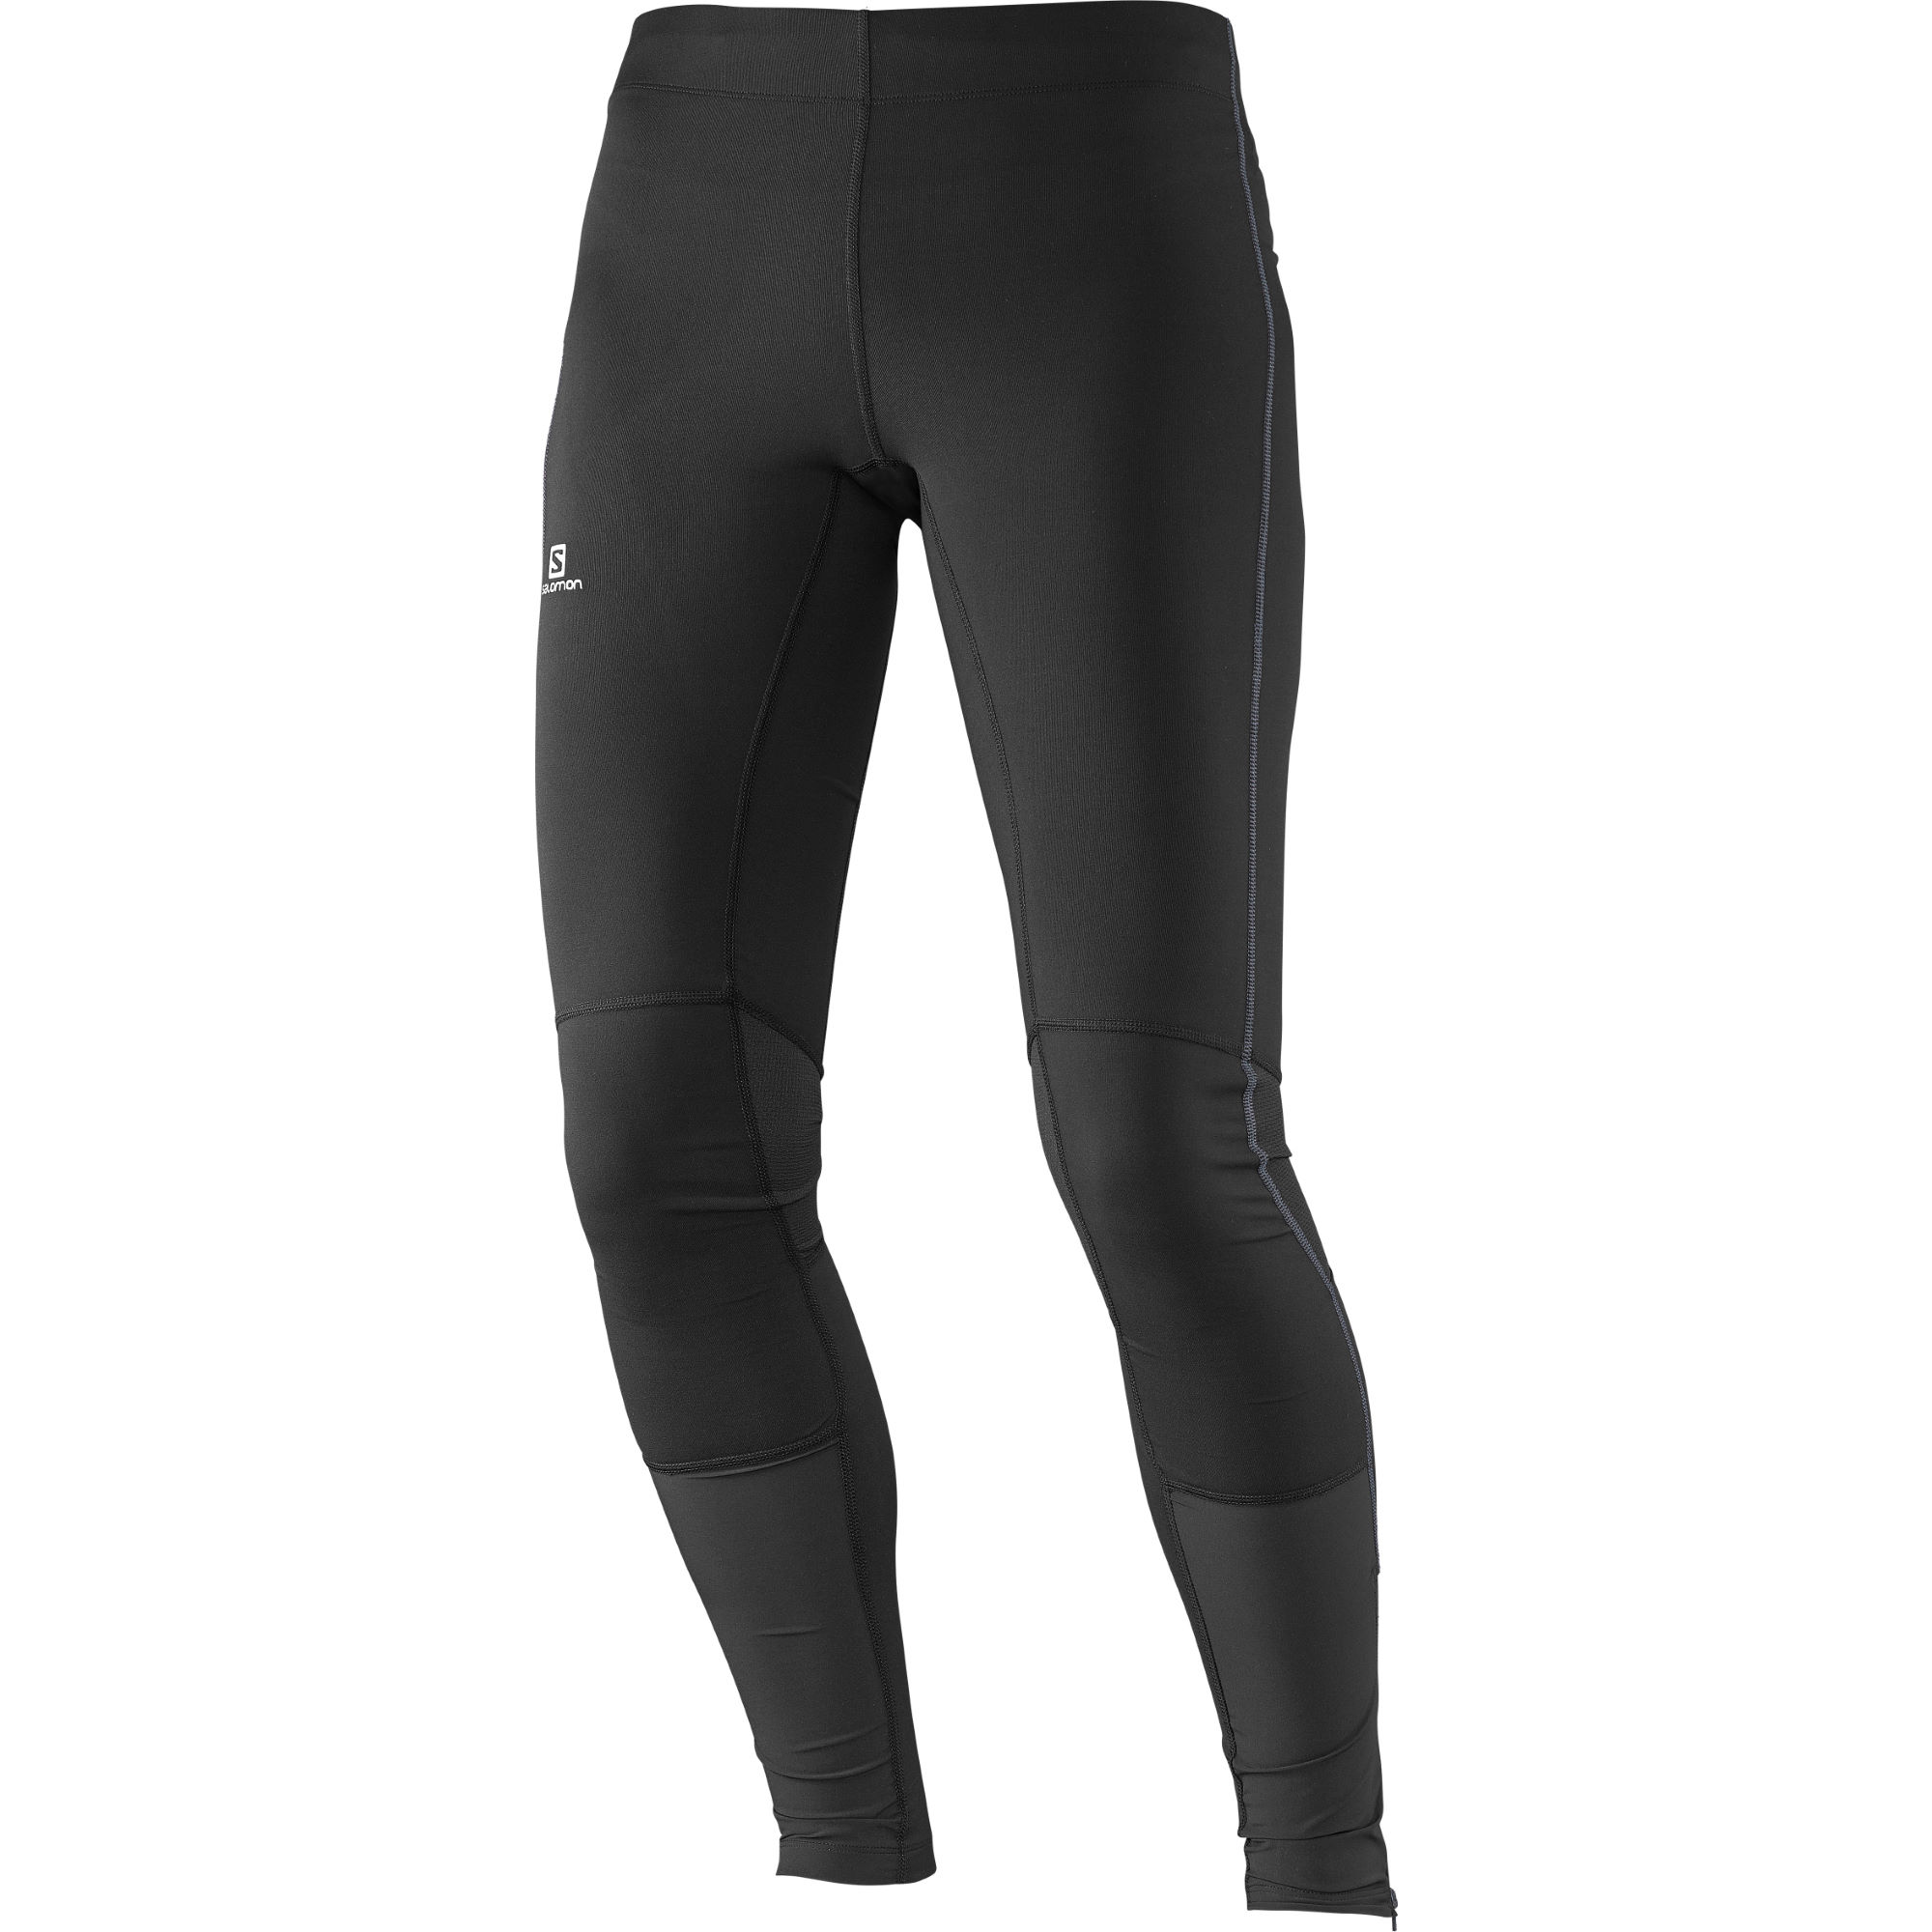 Shop women's running pants & tights from DICK'S Sporting Goods today. If you find a lower price on women's running pants & tights somewhere else, we'll match it with our Best Price Guarantee! Check out customer reviews on women's running pants & tights and save big on a variety of products. Plus, ScoreCard members earn points on every purchase.